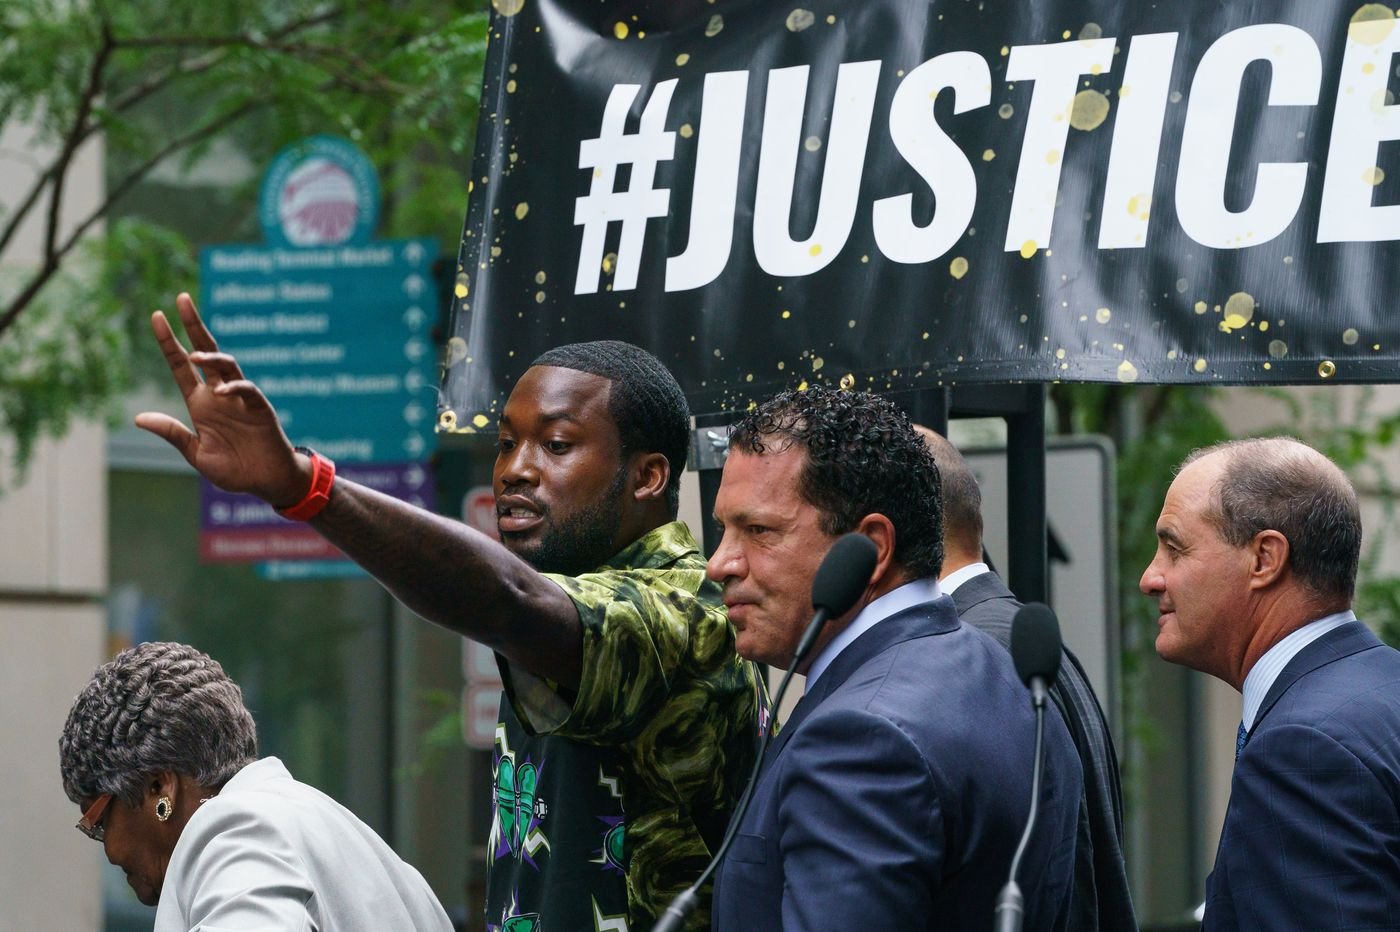 Meek Mill's legal drama has come to an end. What happens to his career now?